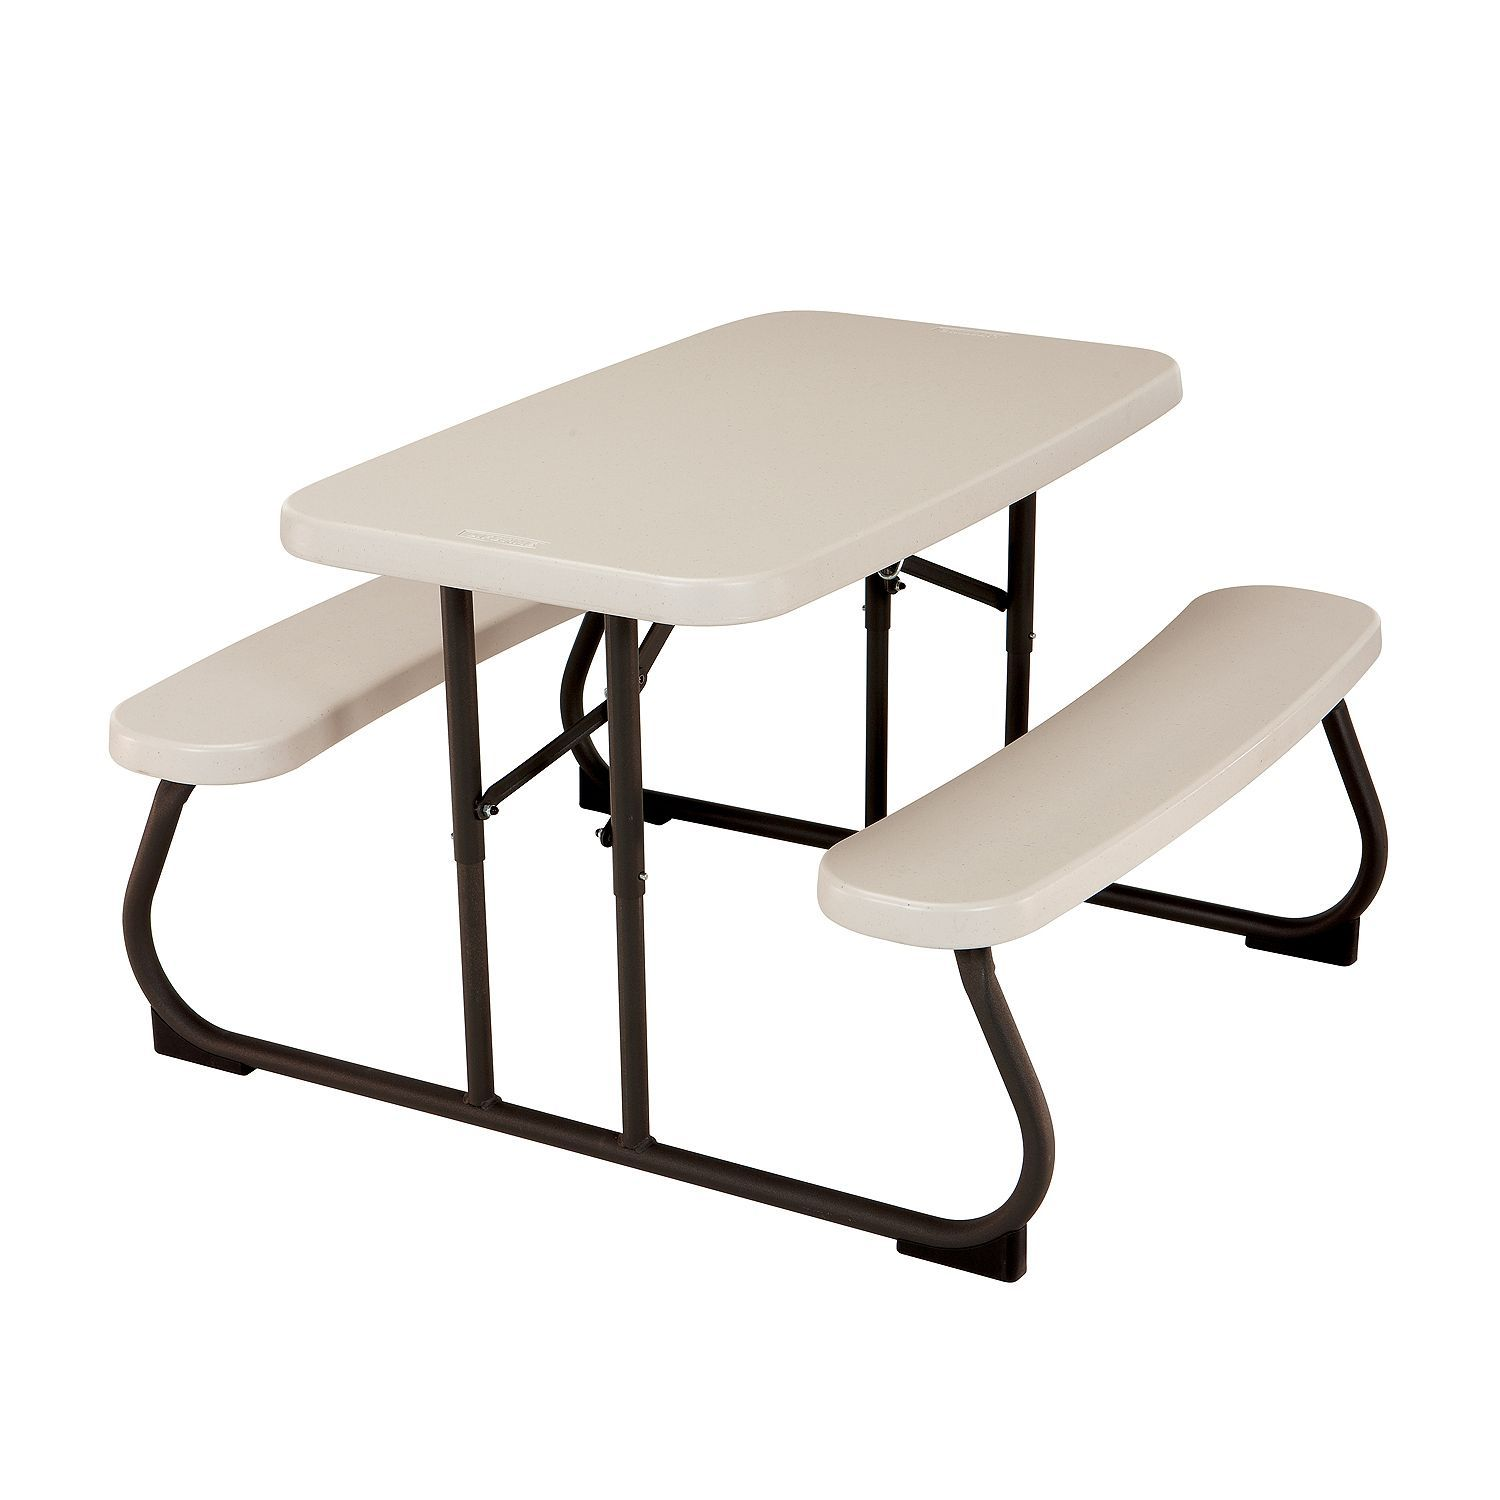 Lifetime 32 5 Quot Kids Folding Picnic Table Almond Sam S